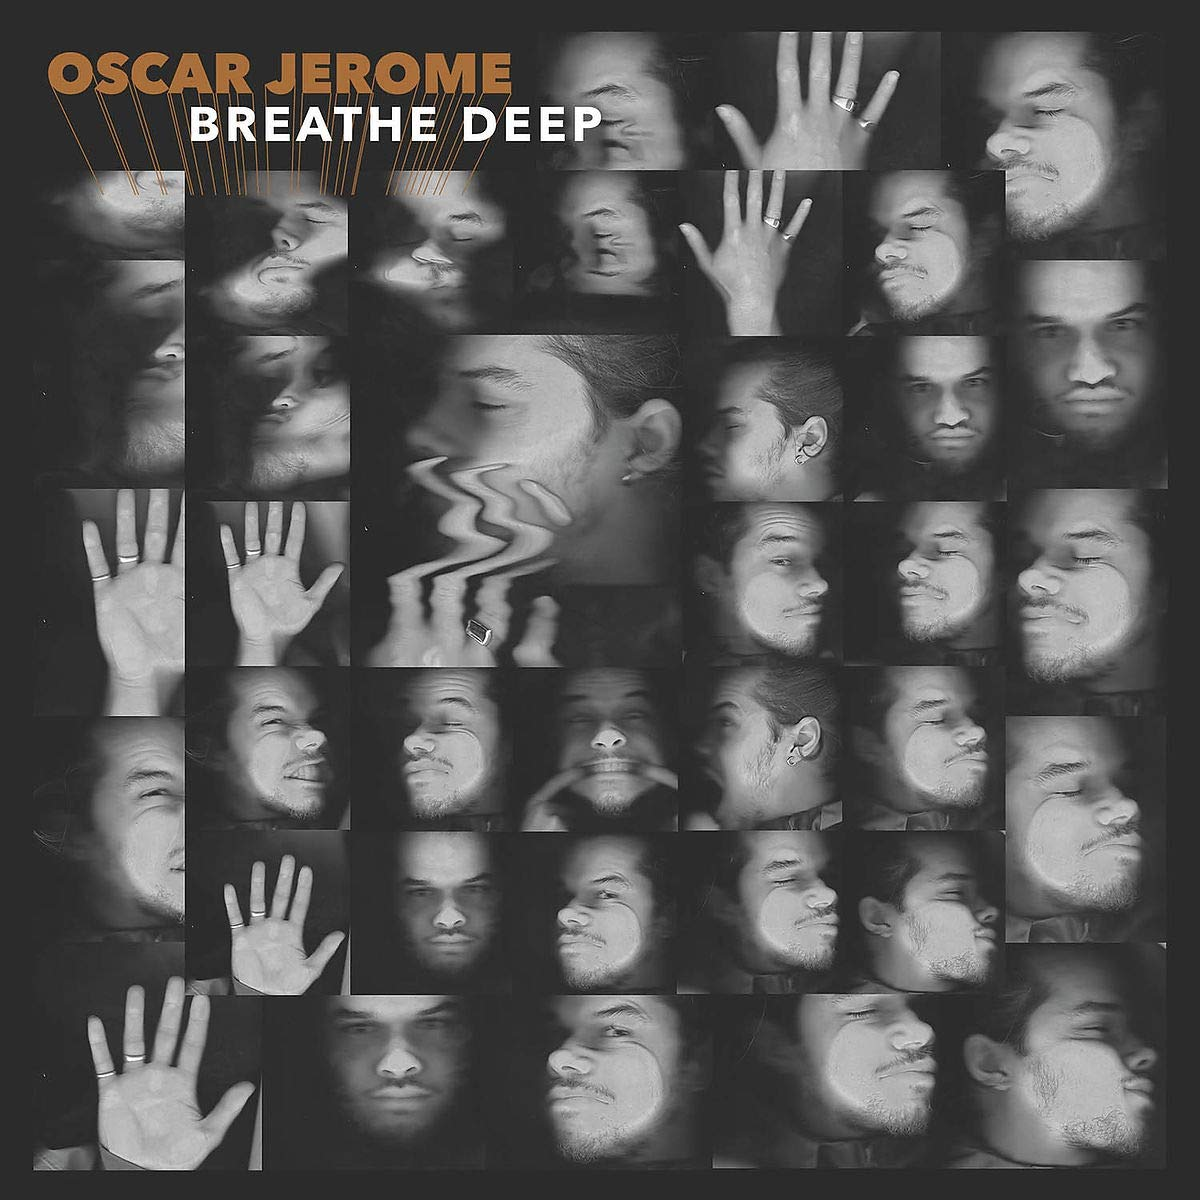 Oscar Jerome - Breathe Deep (Jpn)